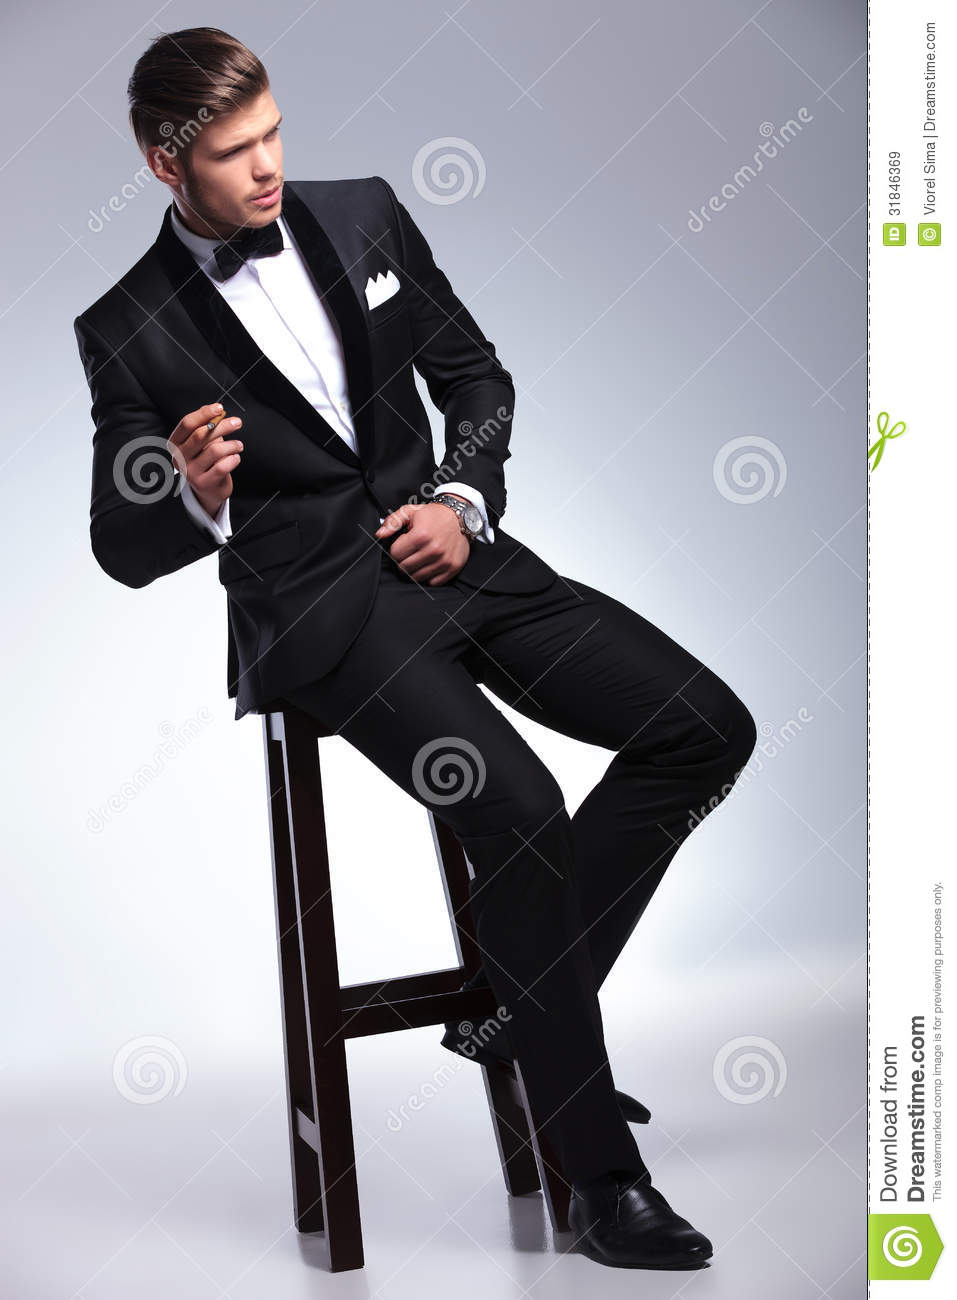 Business Man Looks Away While Smoking On Chair Royalty